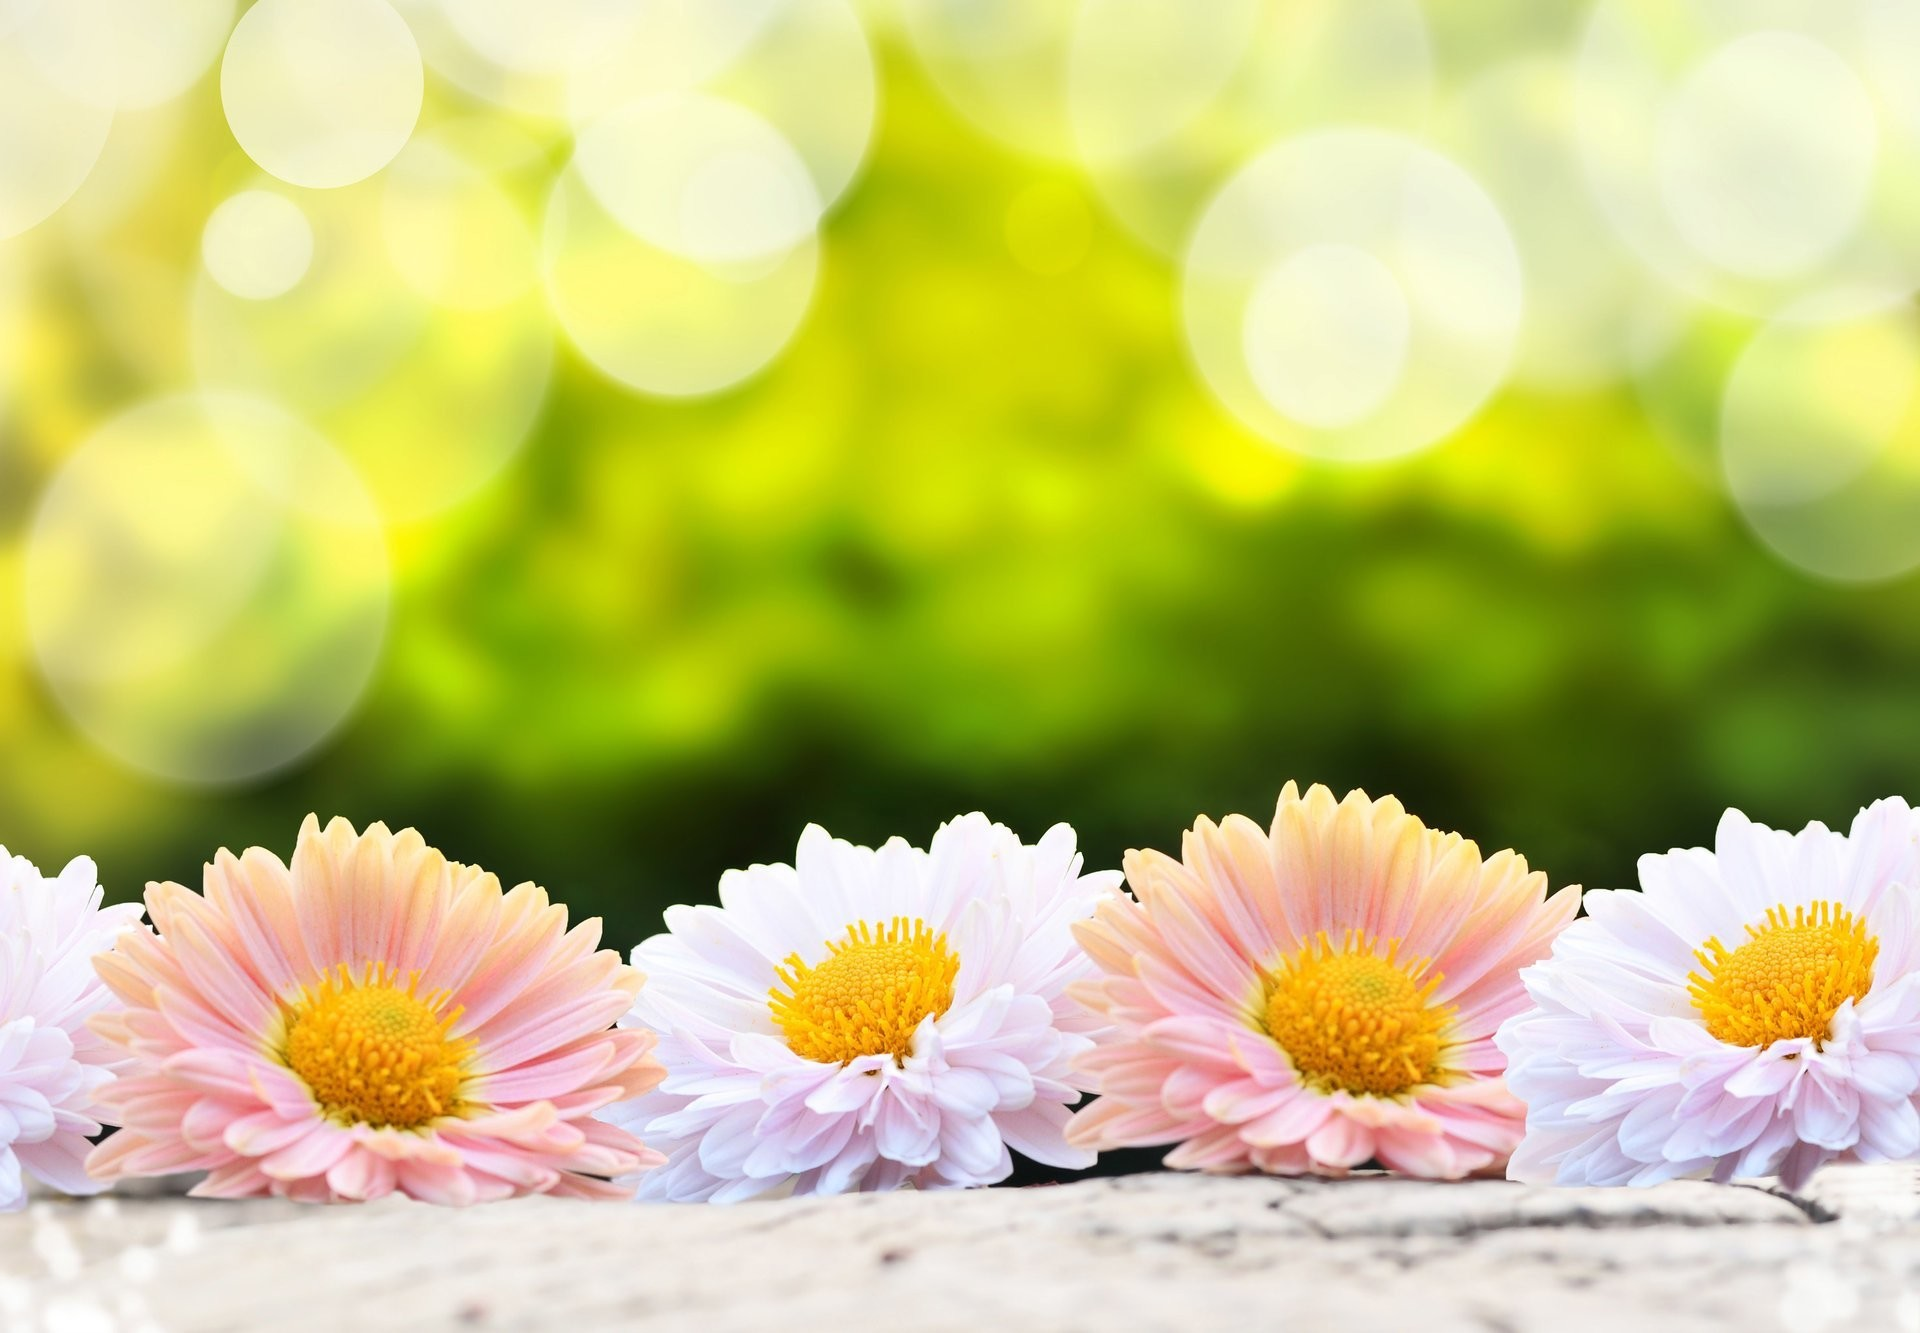 1920x1333 flower flowers flower flower gerbera gerbera pink white green background  nature nature blur bokeh wallpaper.